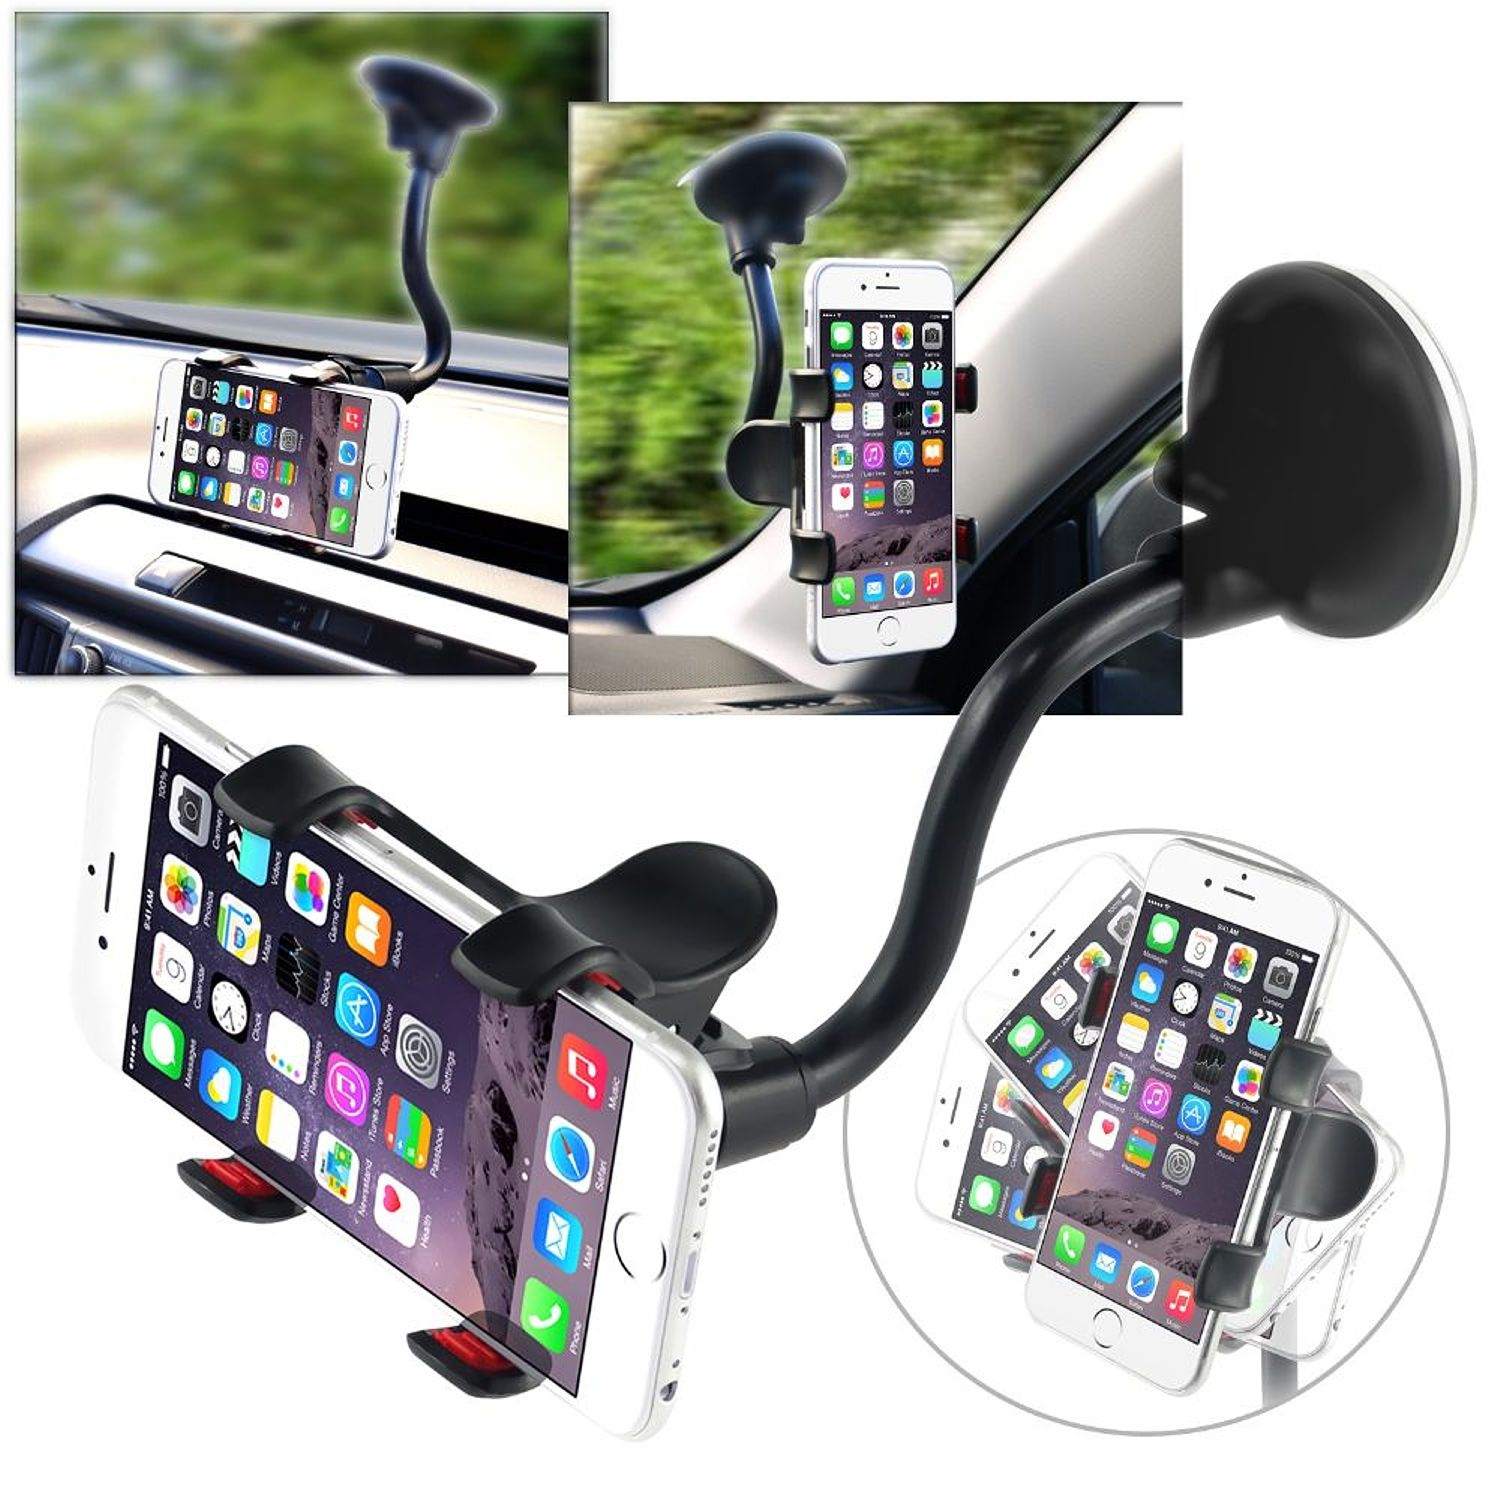 Insten Universal Car Mount Suction Phone Holder Dashboard Windshield Cradle For Cell Phone Smartphone Apple iPhone X 8 Plus 7 6 SE 5S iPod Samsung Galaxy S9 S9+ Plus S8 S7 J7 J3 LG Stylo 3 G6 V30 GPS